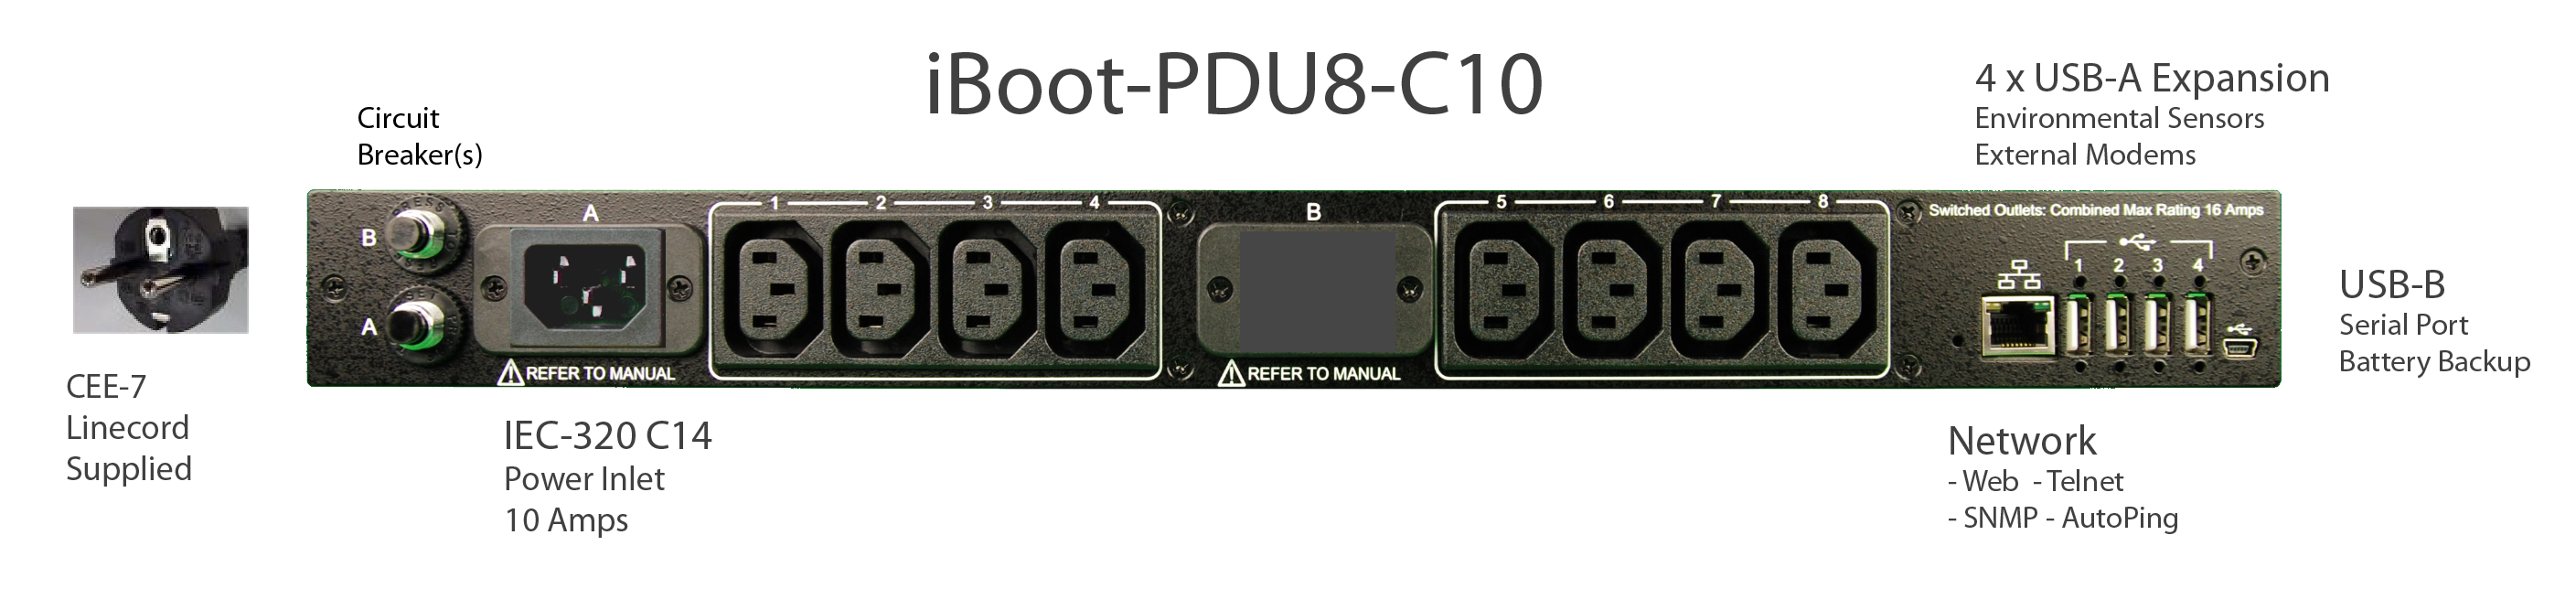 iBoot-PDU8-C10 for Remote Reboot, 1 x IEC C14 .